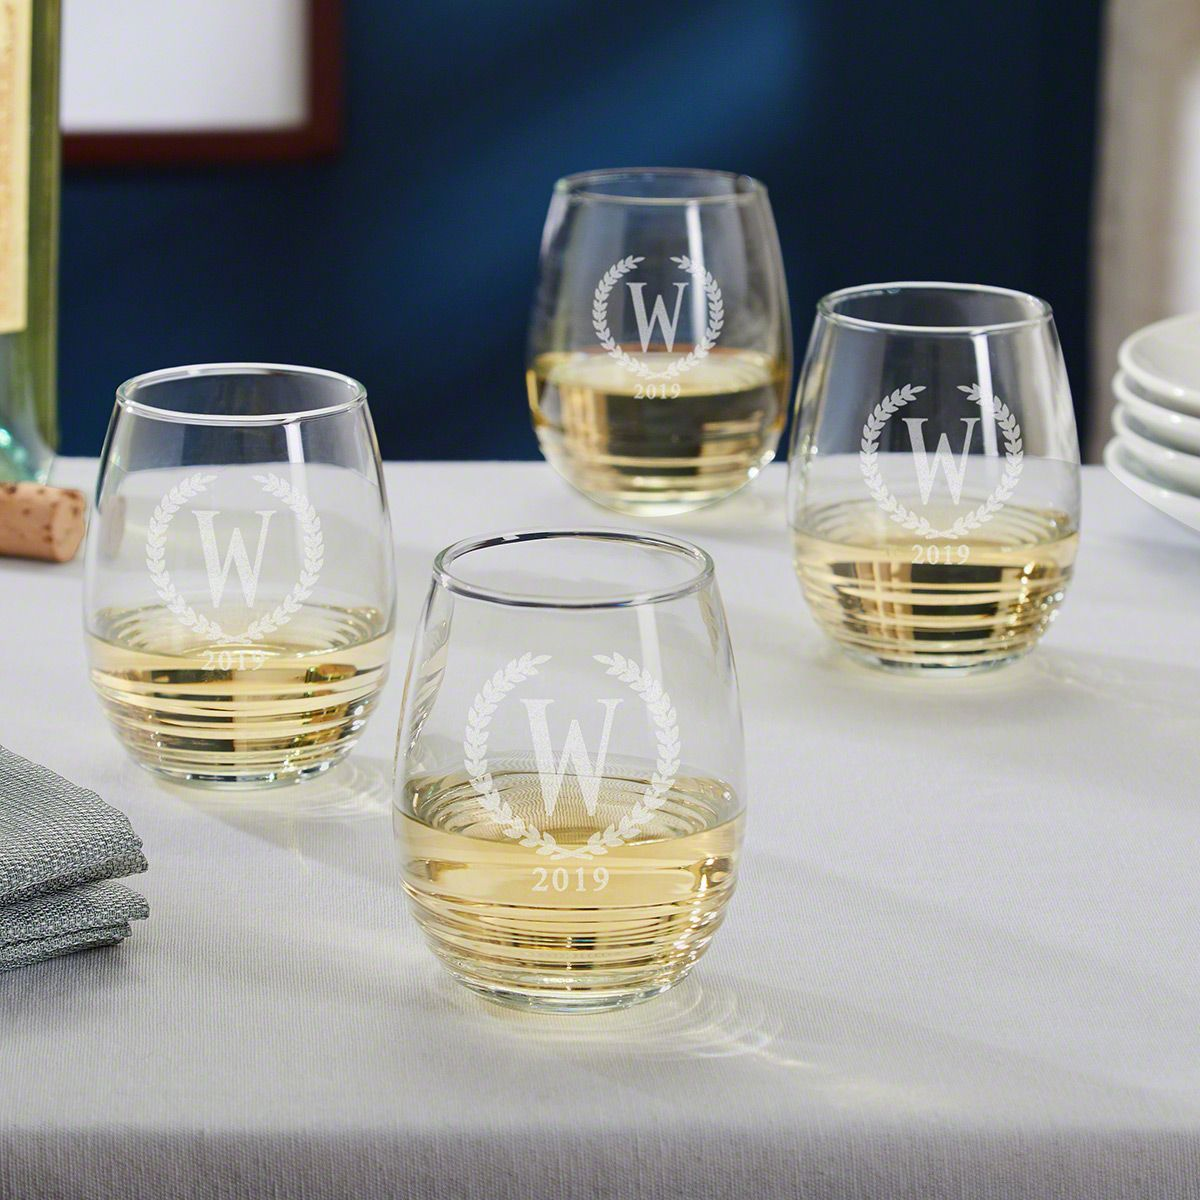 Ripple etched white Wine Glasses 1 Statesman